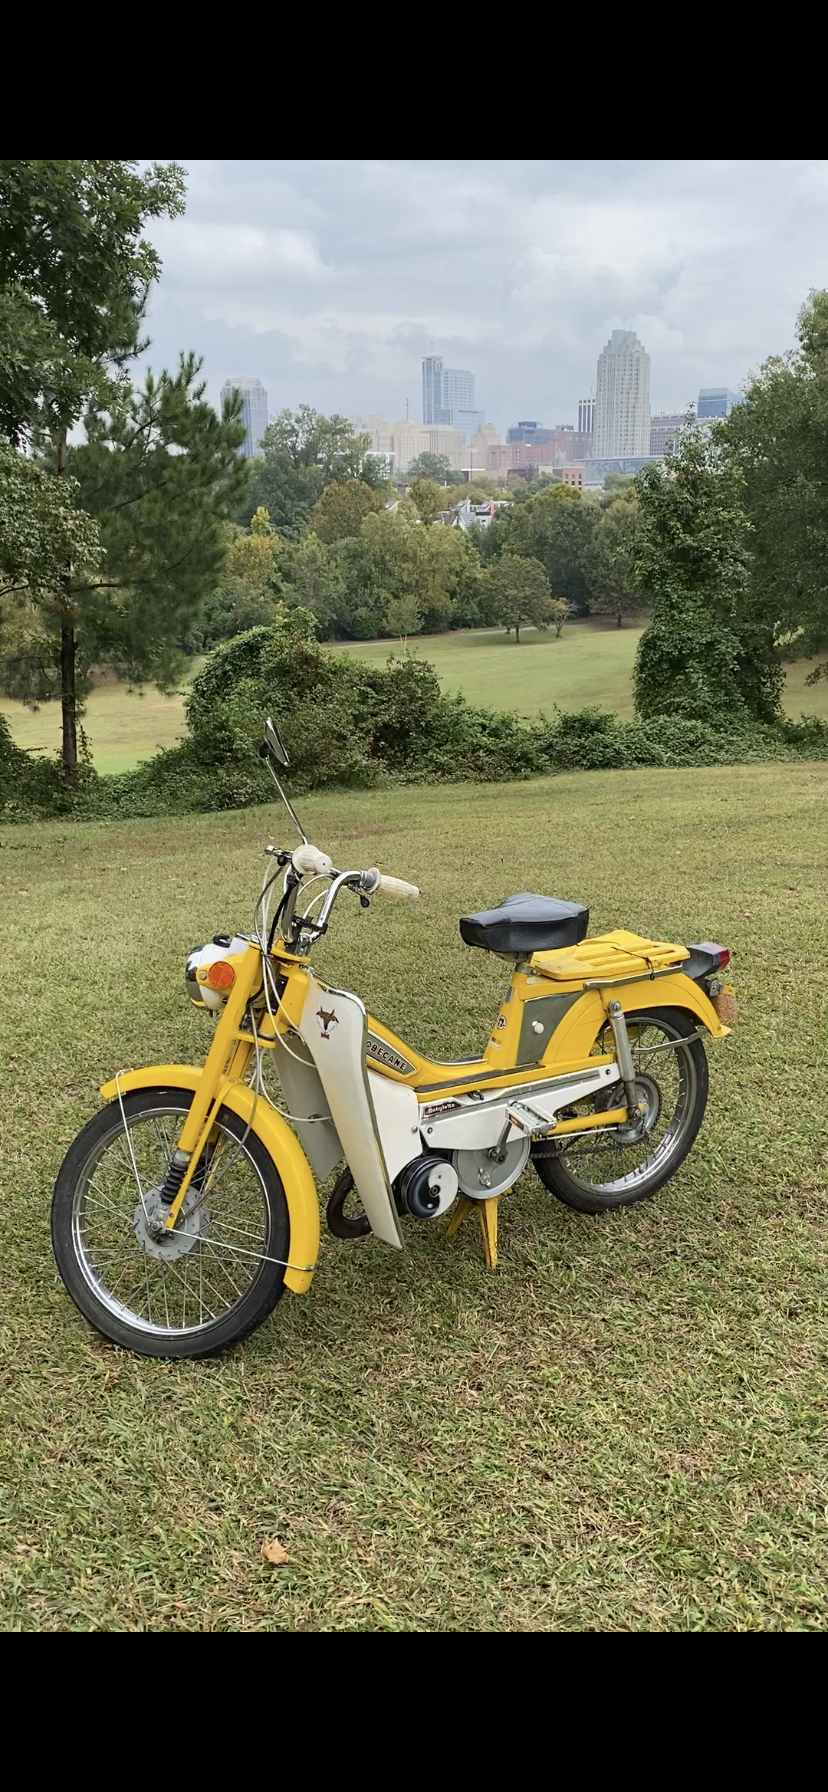 1978 Motobecane 50, Yellow